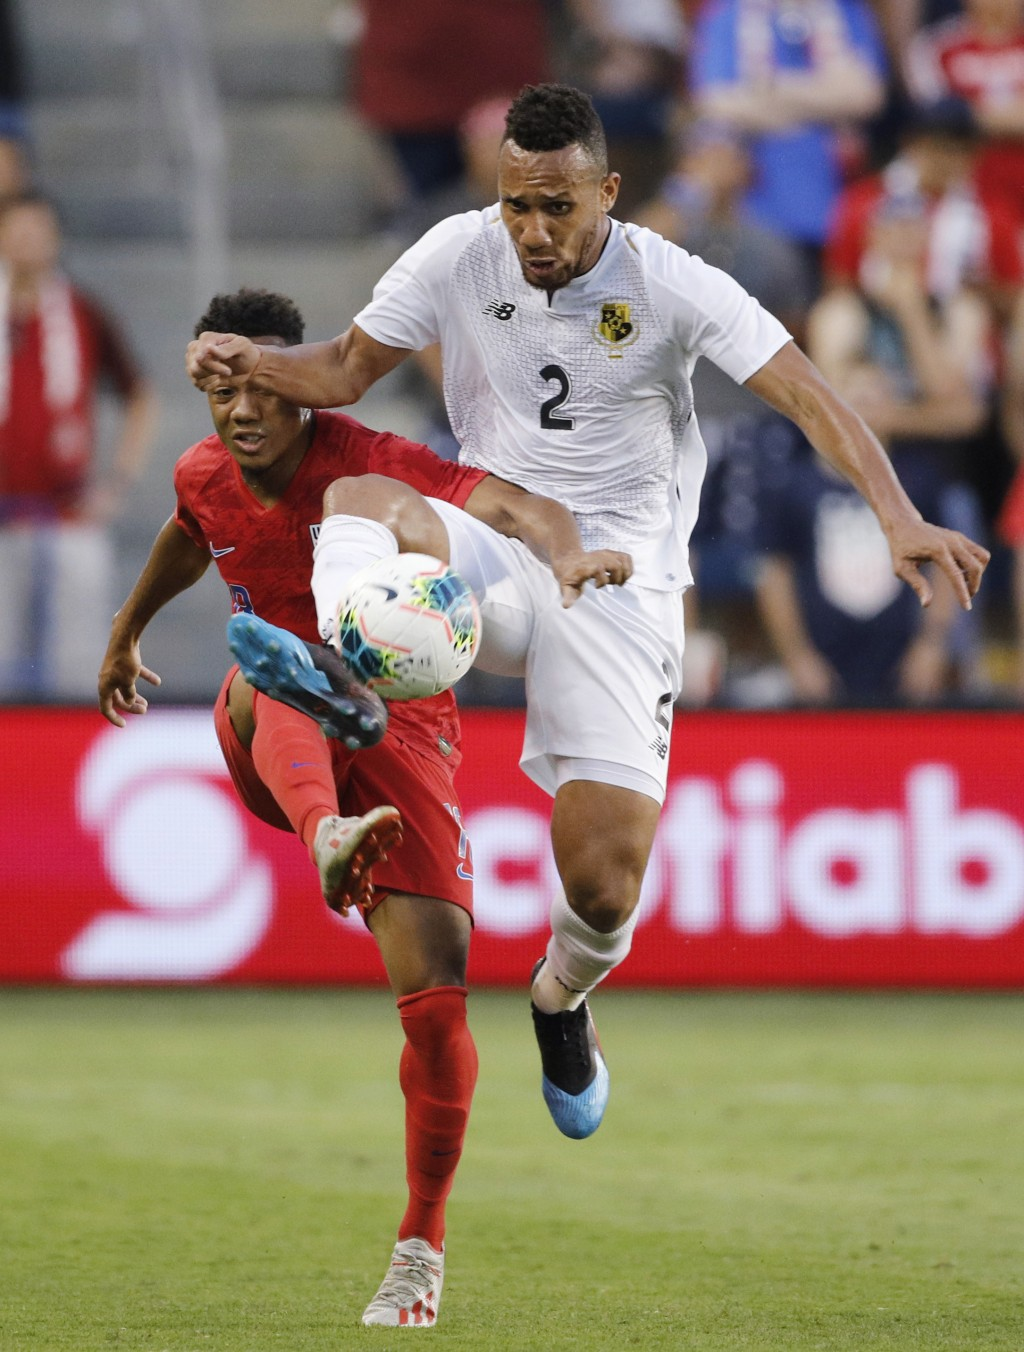 U.S. forward Jonathan Lewis (18) and Panama defender Francisco Palacios (2) viefor the ball during the first half of a CONCACAF Gold Cup soccer match ...